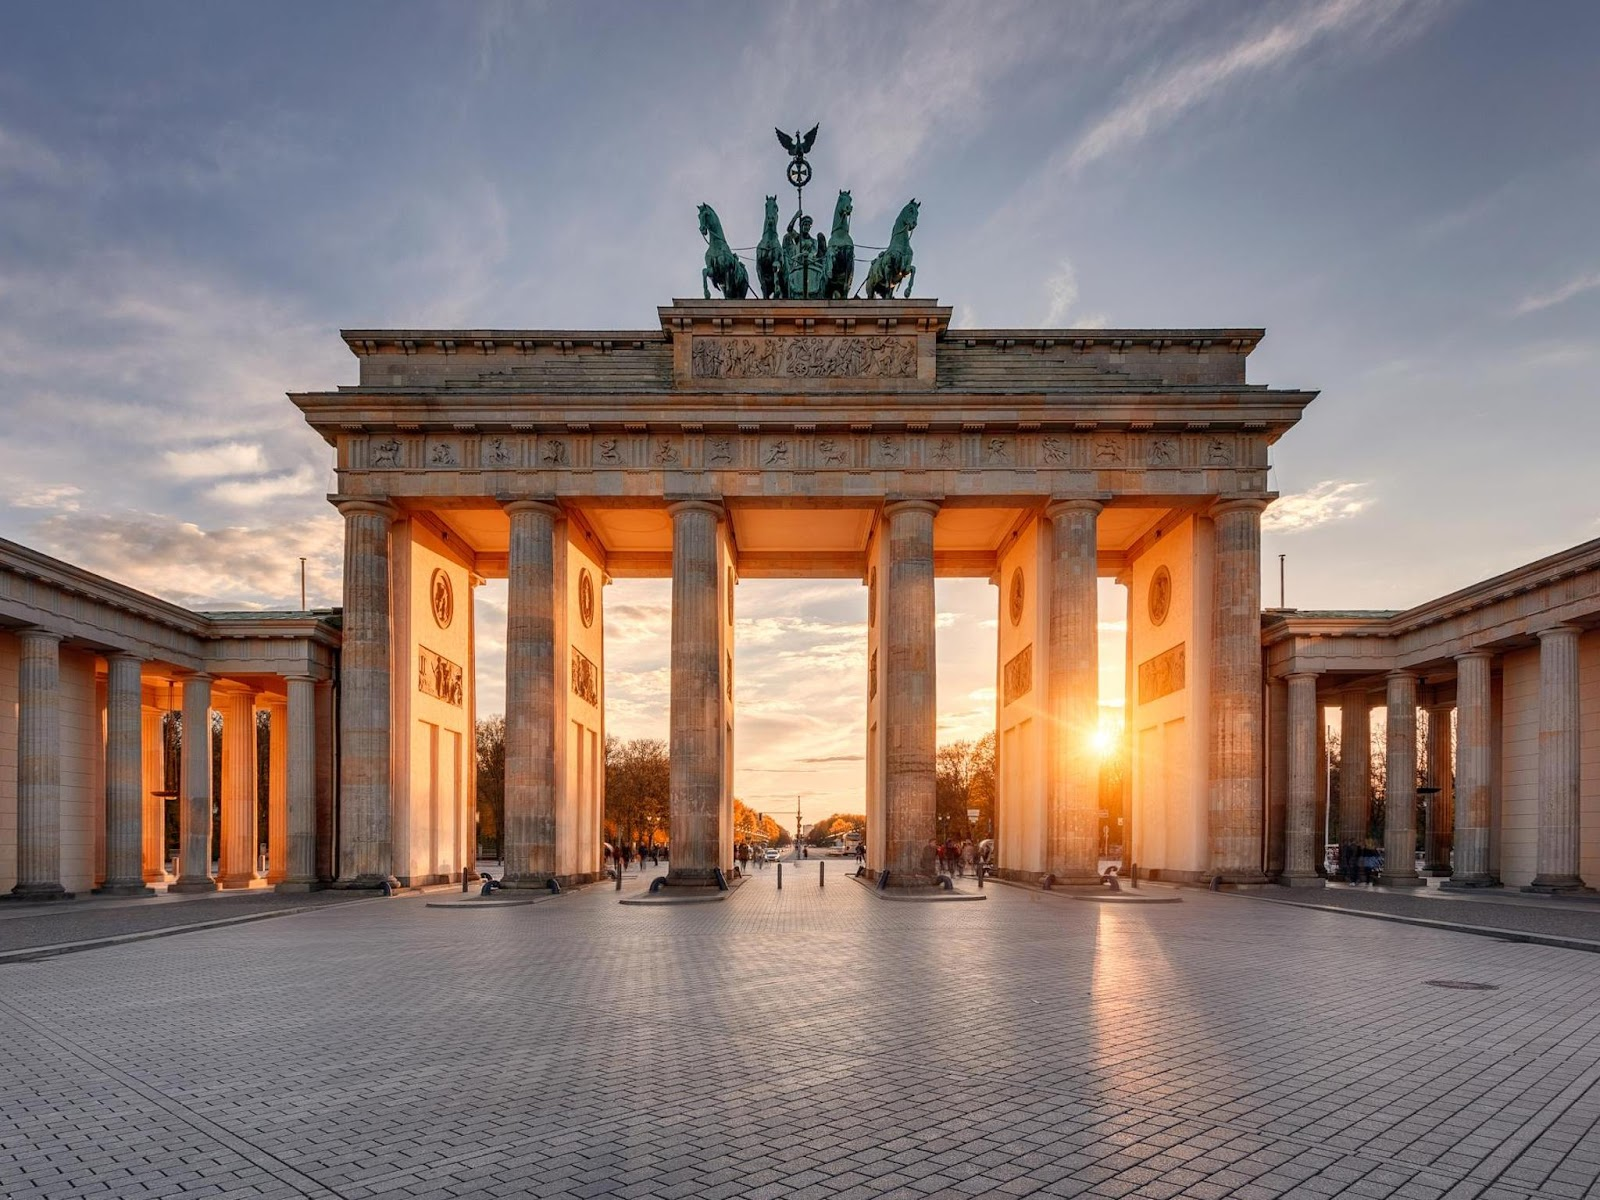 https://wallpapercave.com/brandenburg-gate-wallpapers